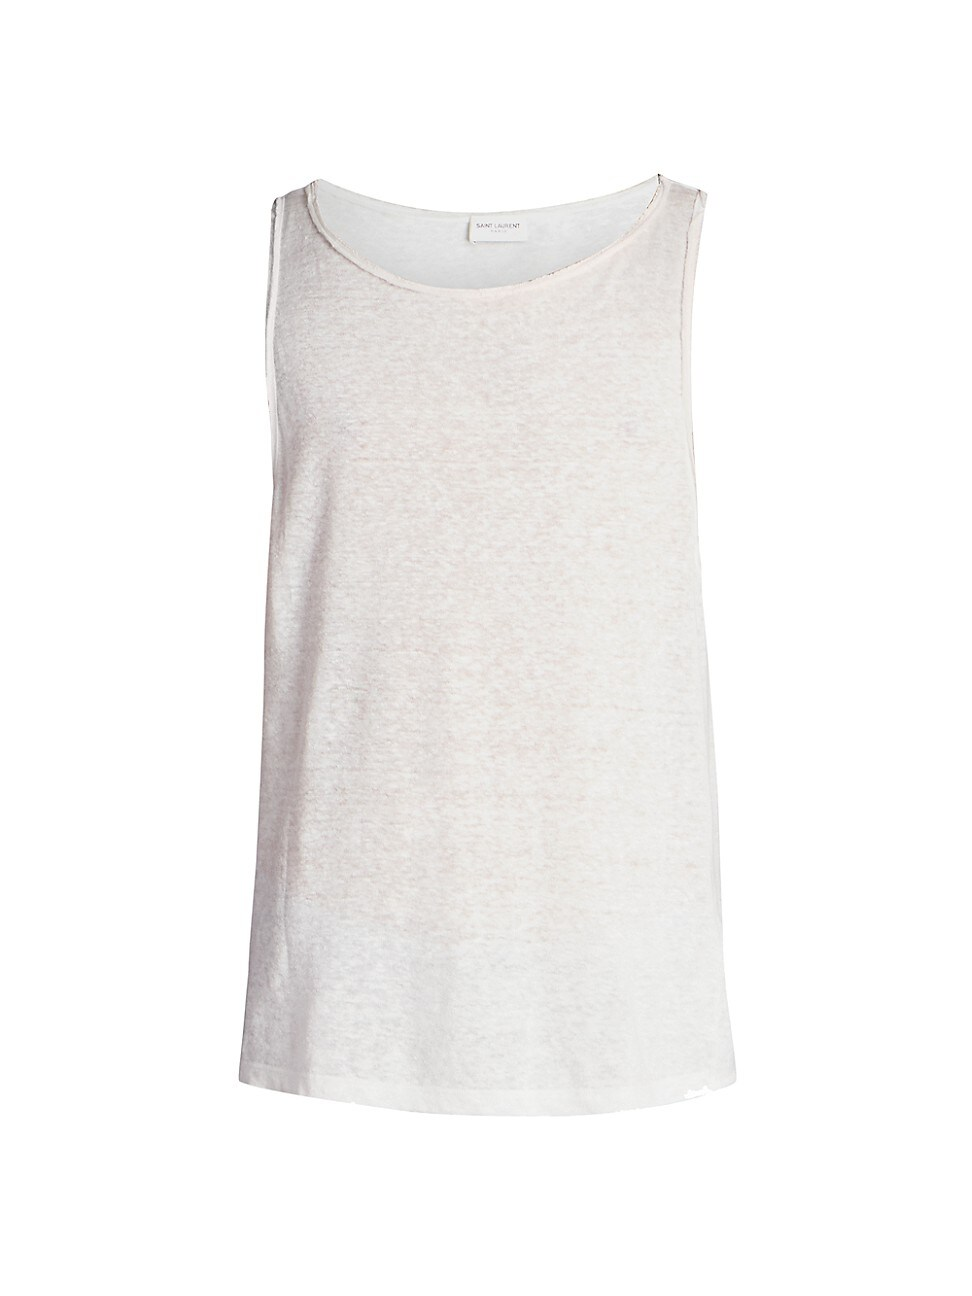 Saint Laurent MEN'S LINEN TANK TOP